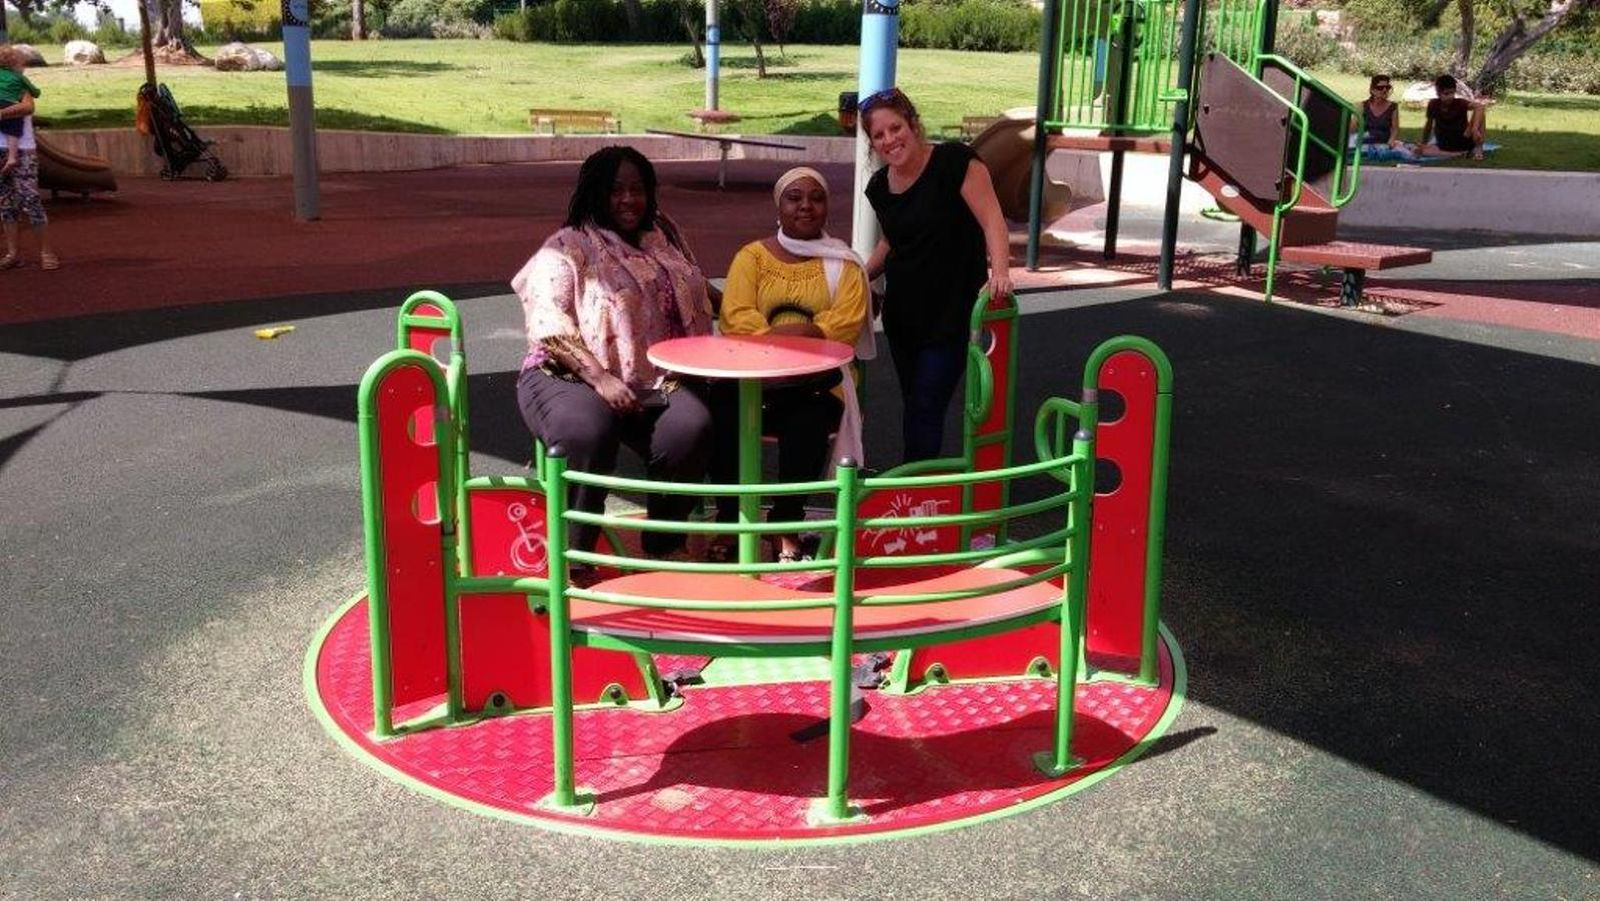 Osuntusa, Askayo and Abdul Kadir in Friendship Park. Photo courtesy of Beit Issie Shapiro